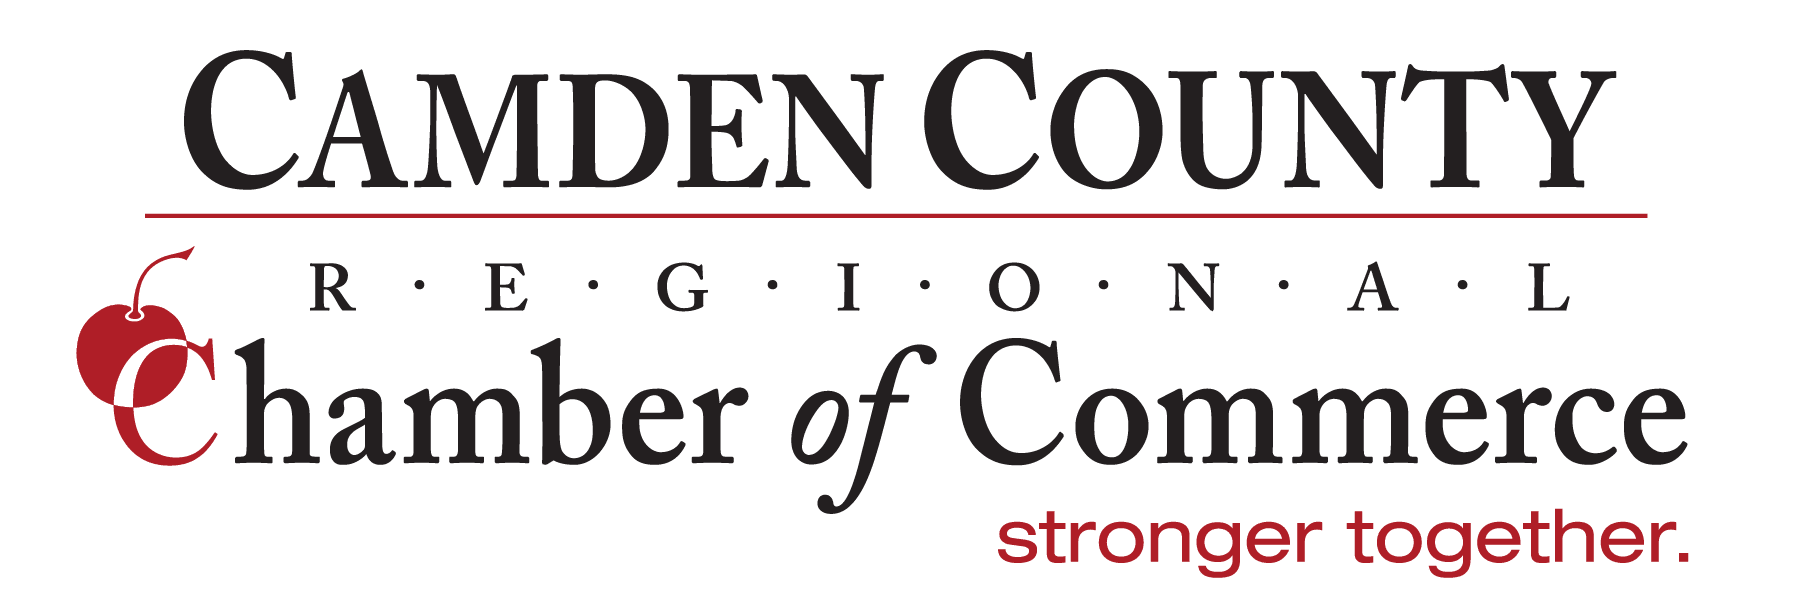 Camden County Chamber of Commerce Logo